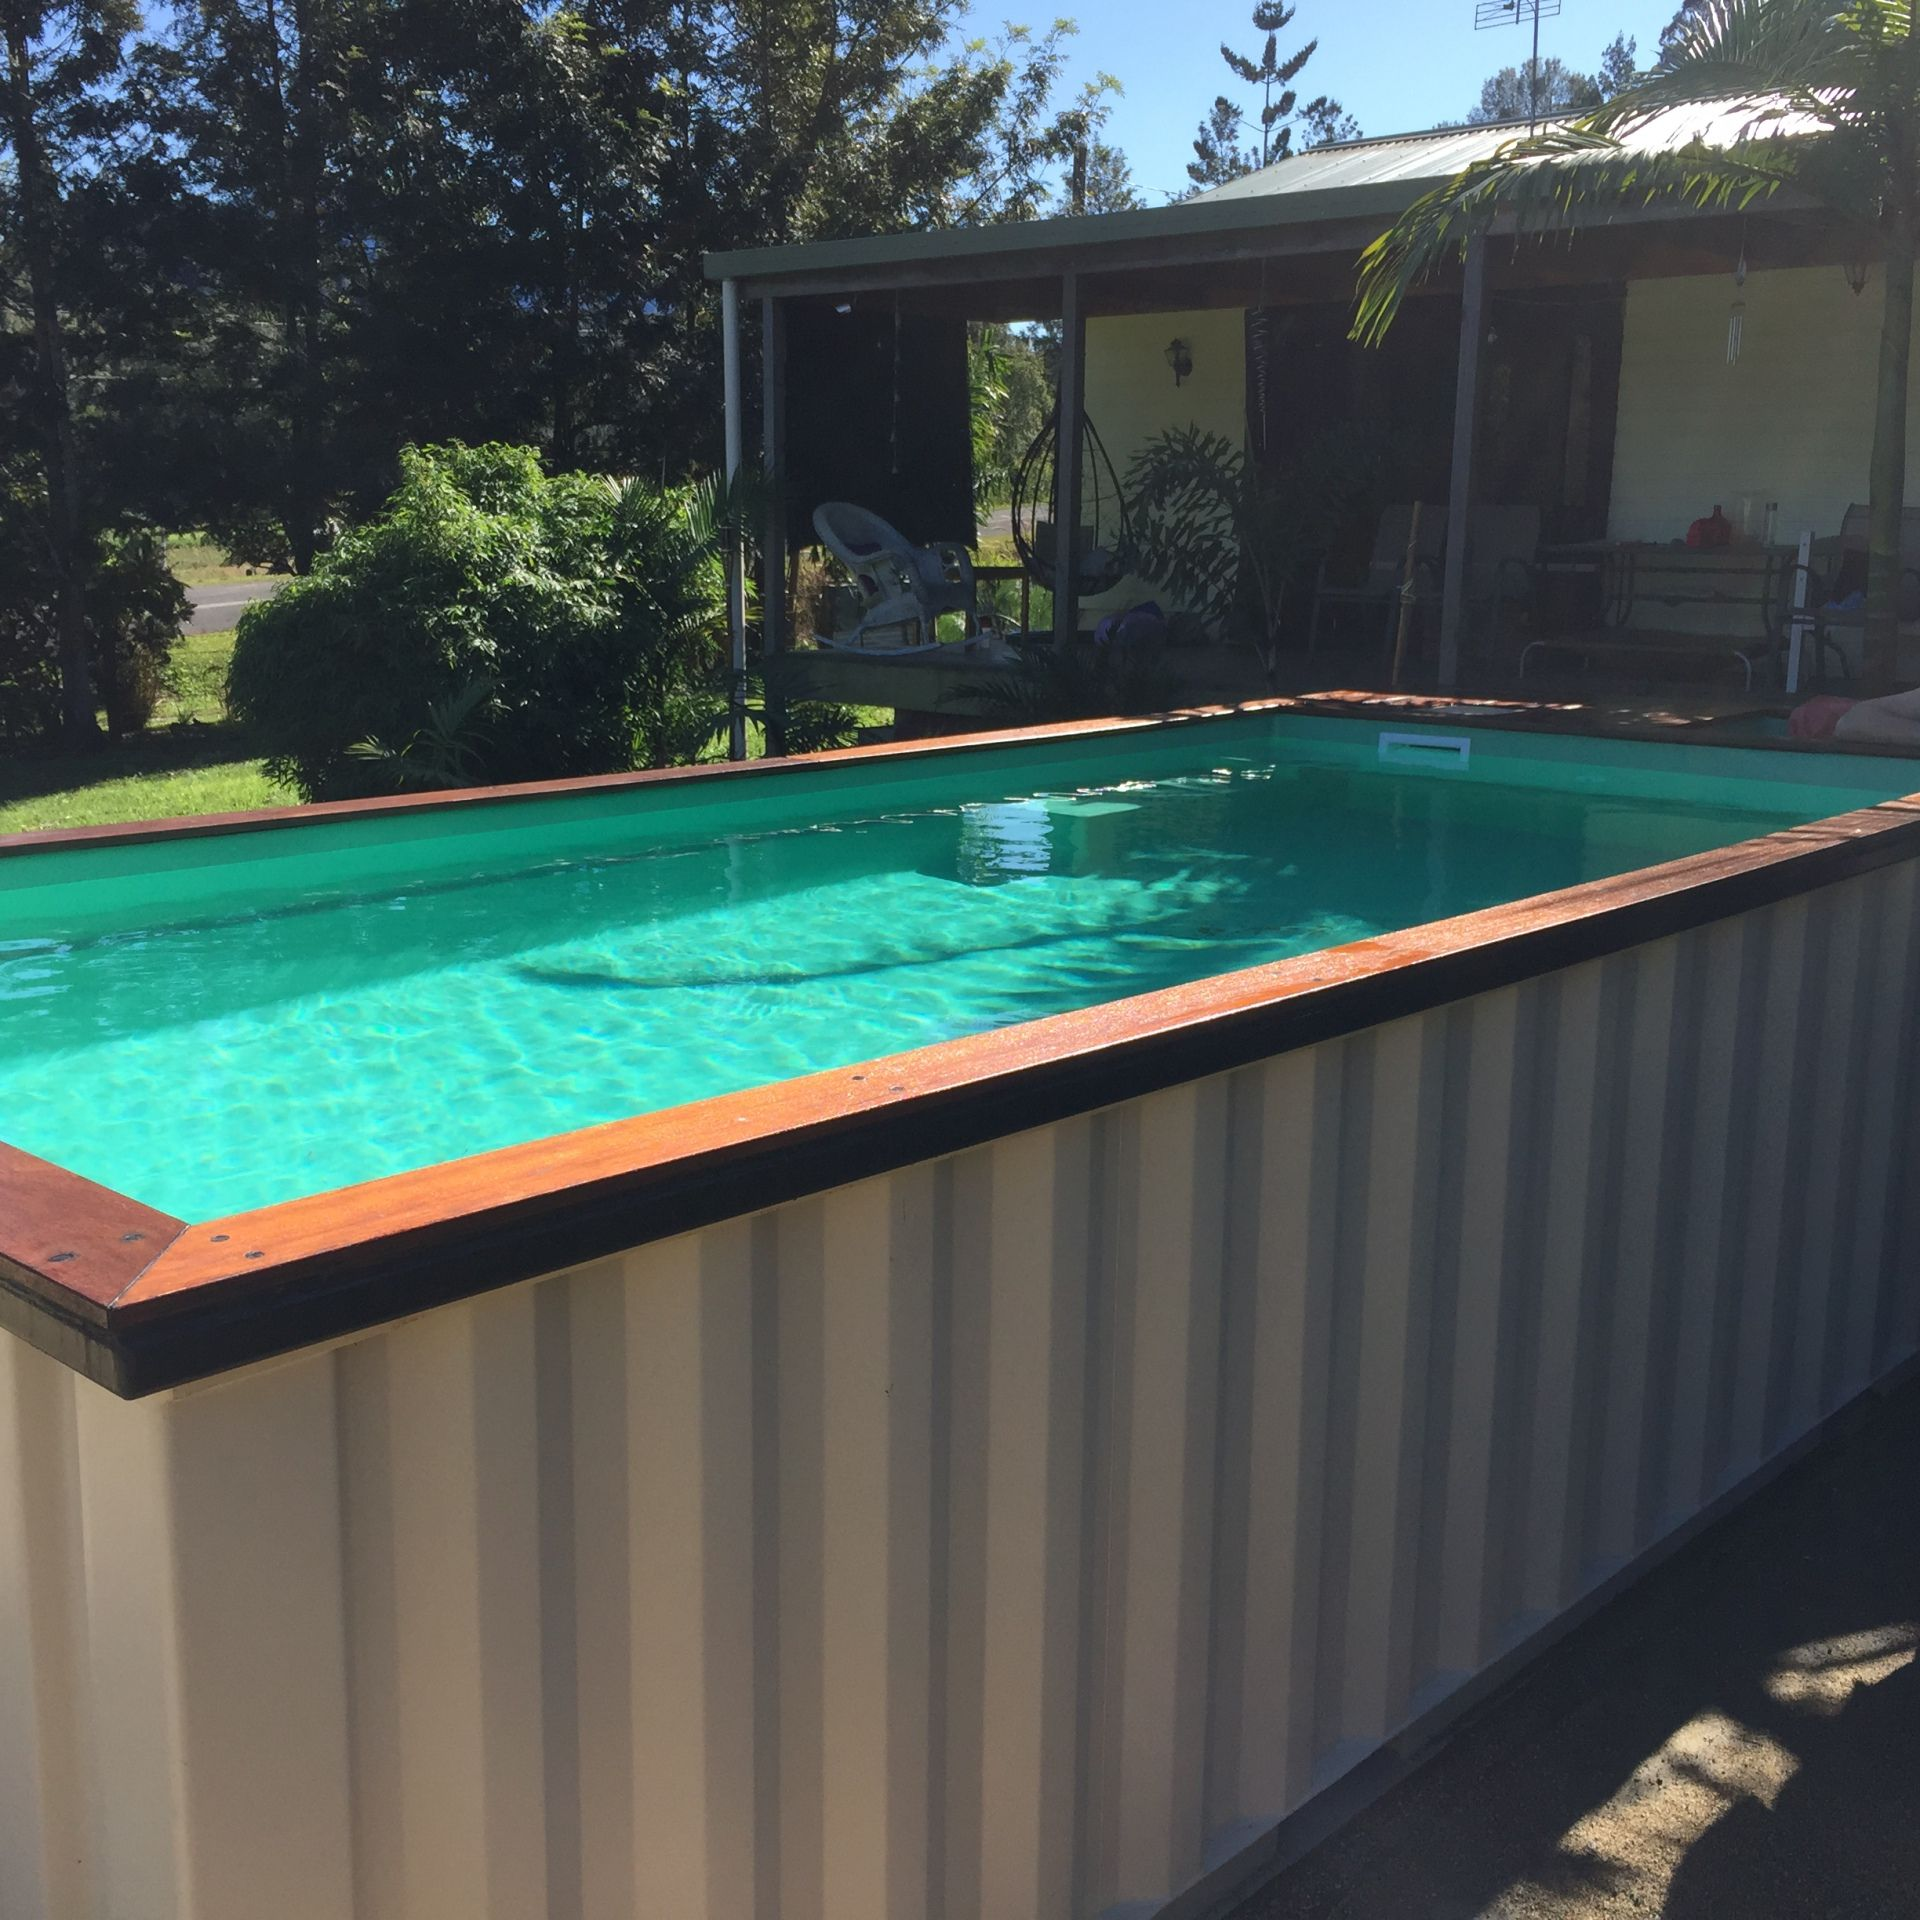 Above Ground Pool Made From A Recycled Shipping Container With Fiber Glass Interior And Solid Timber Trims